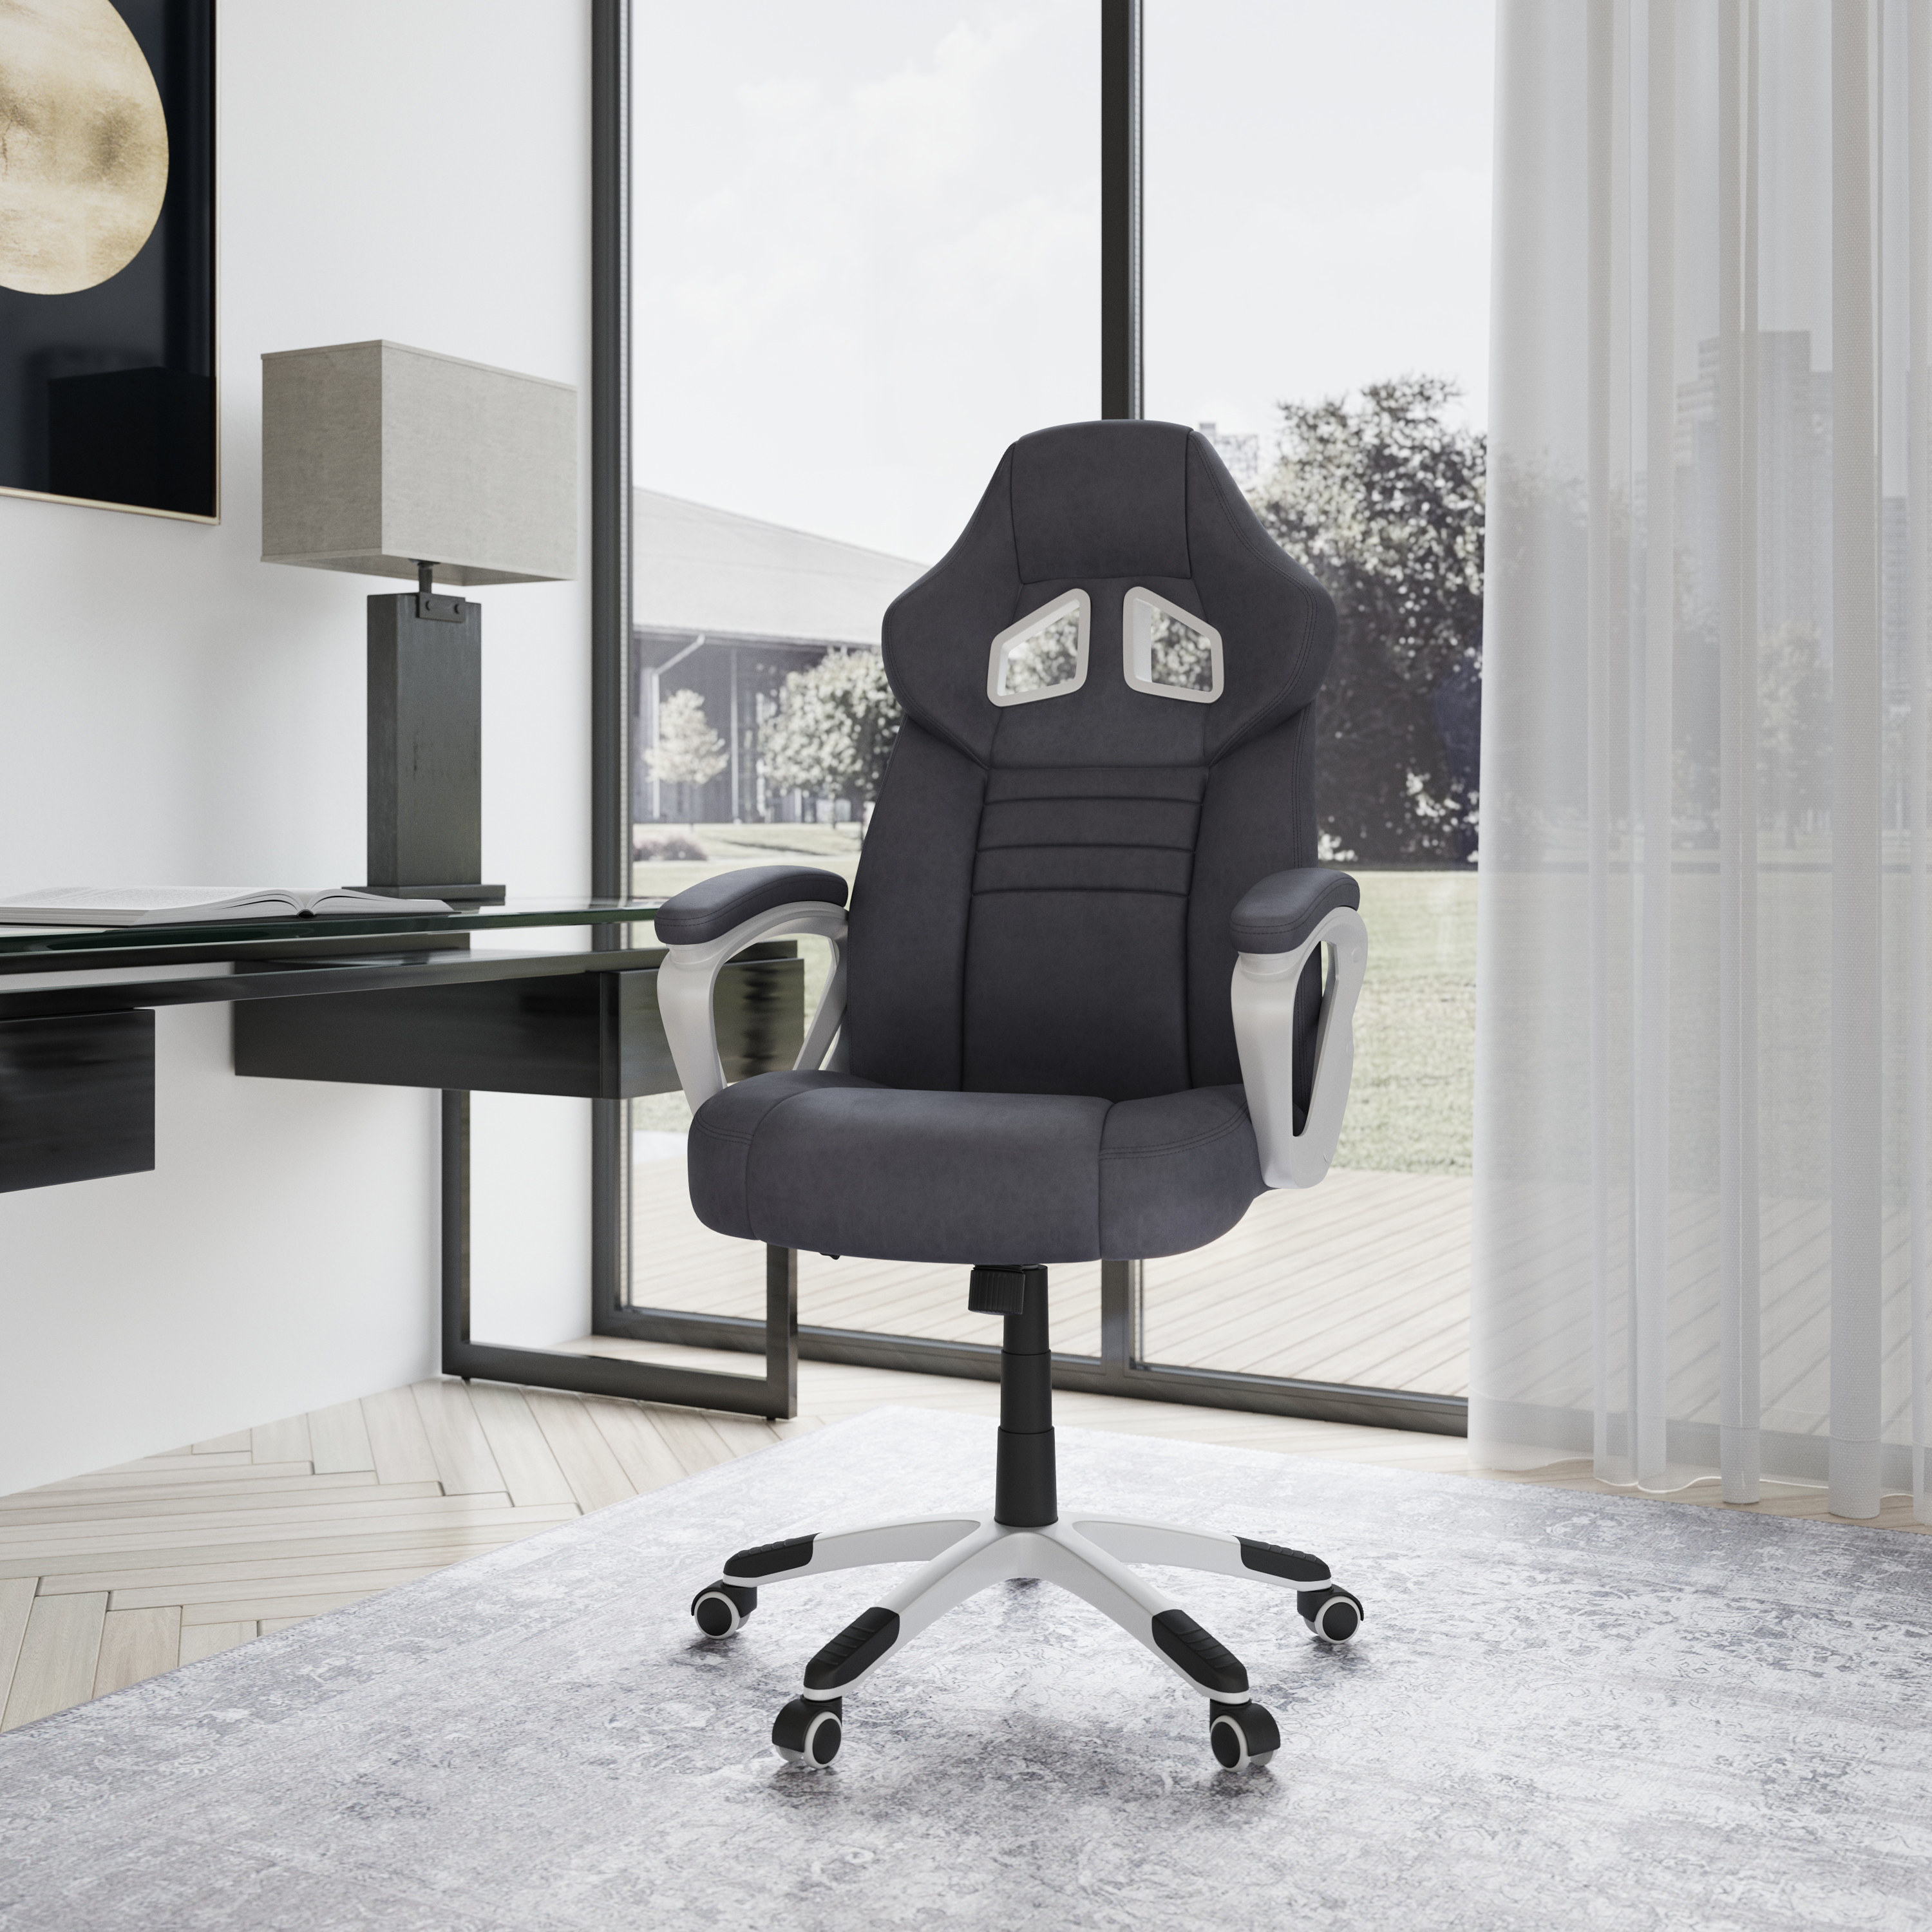 Grey chair with wheels